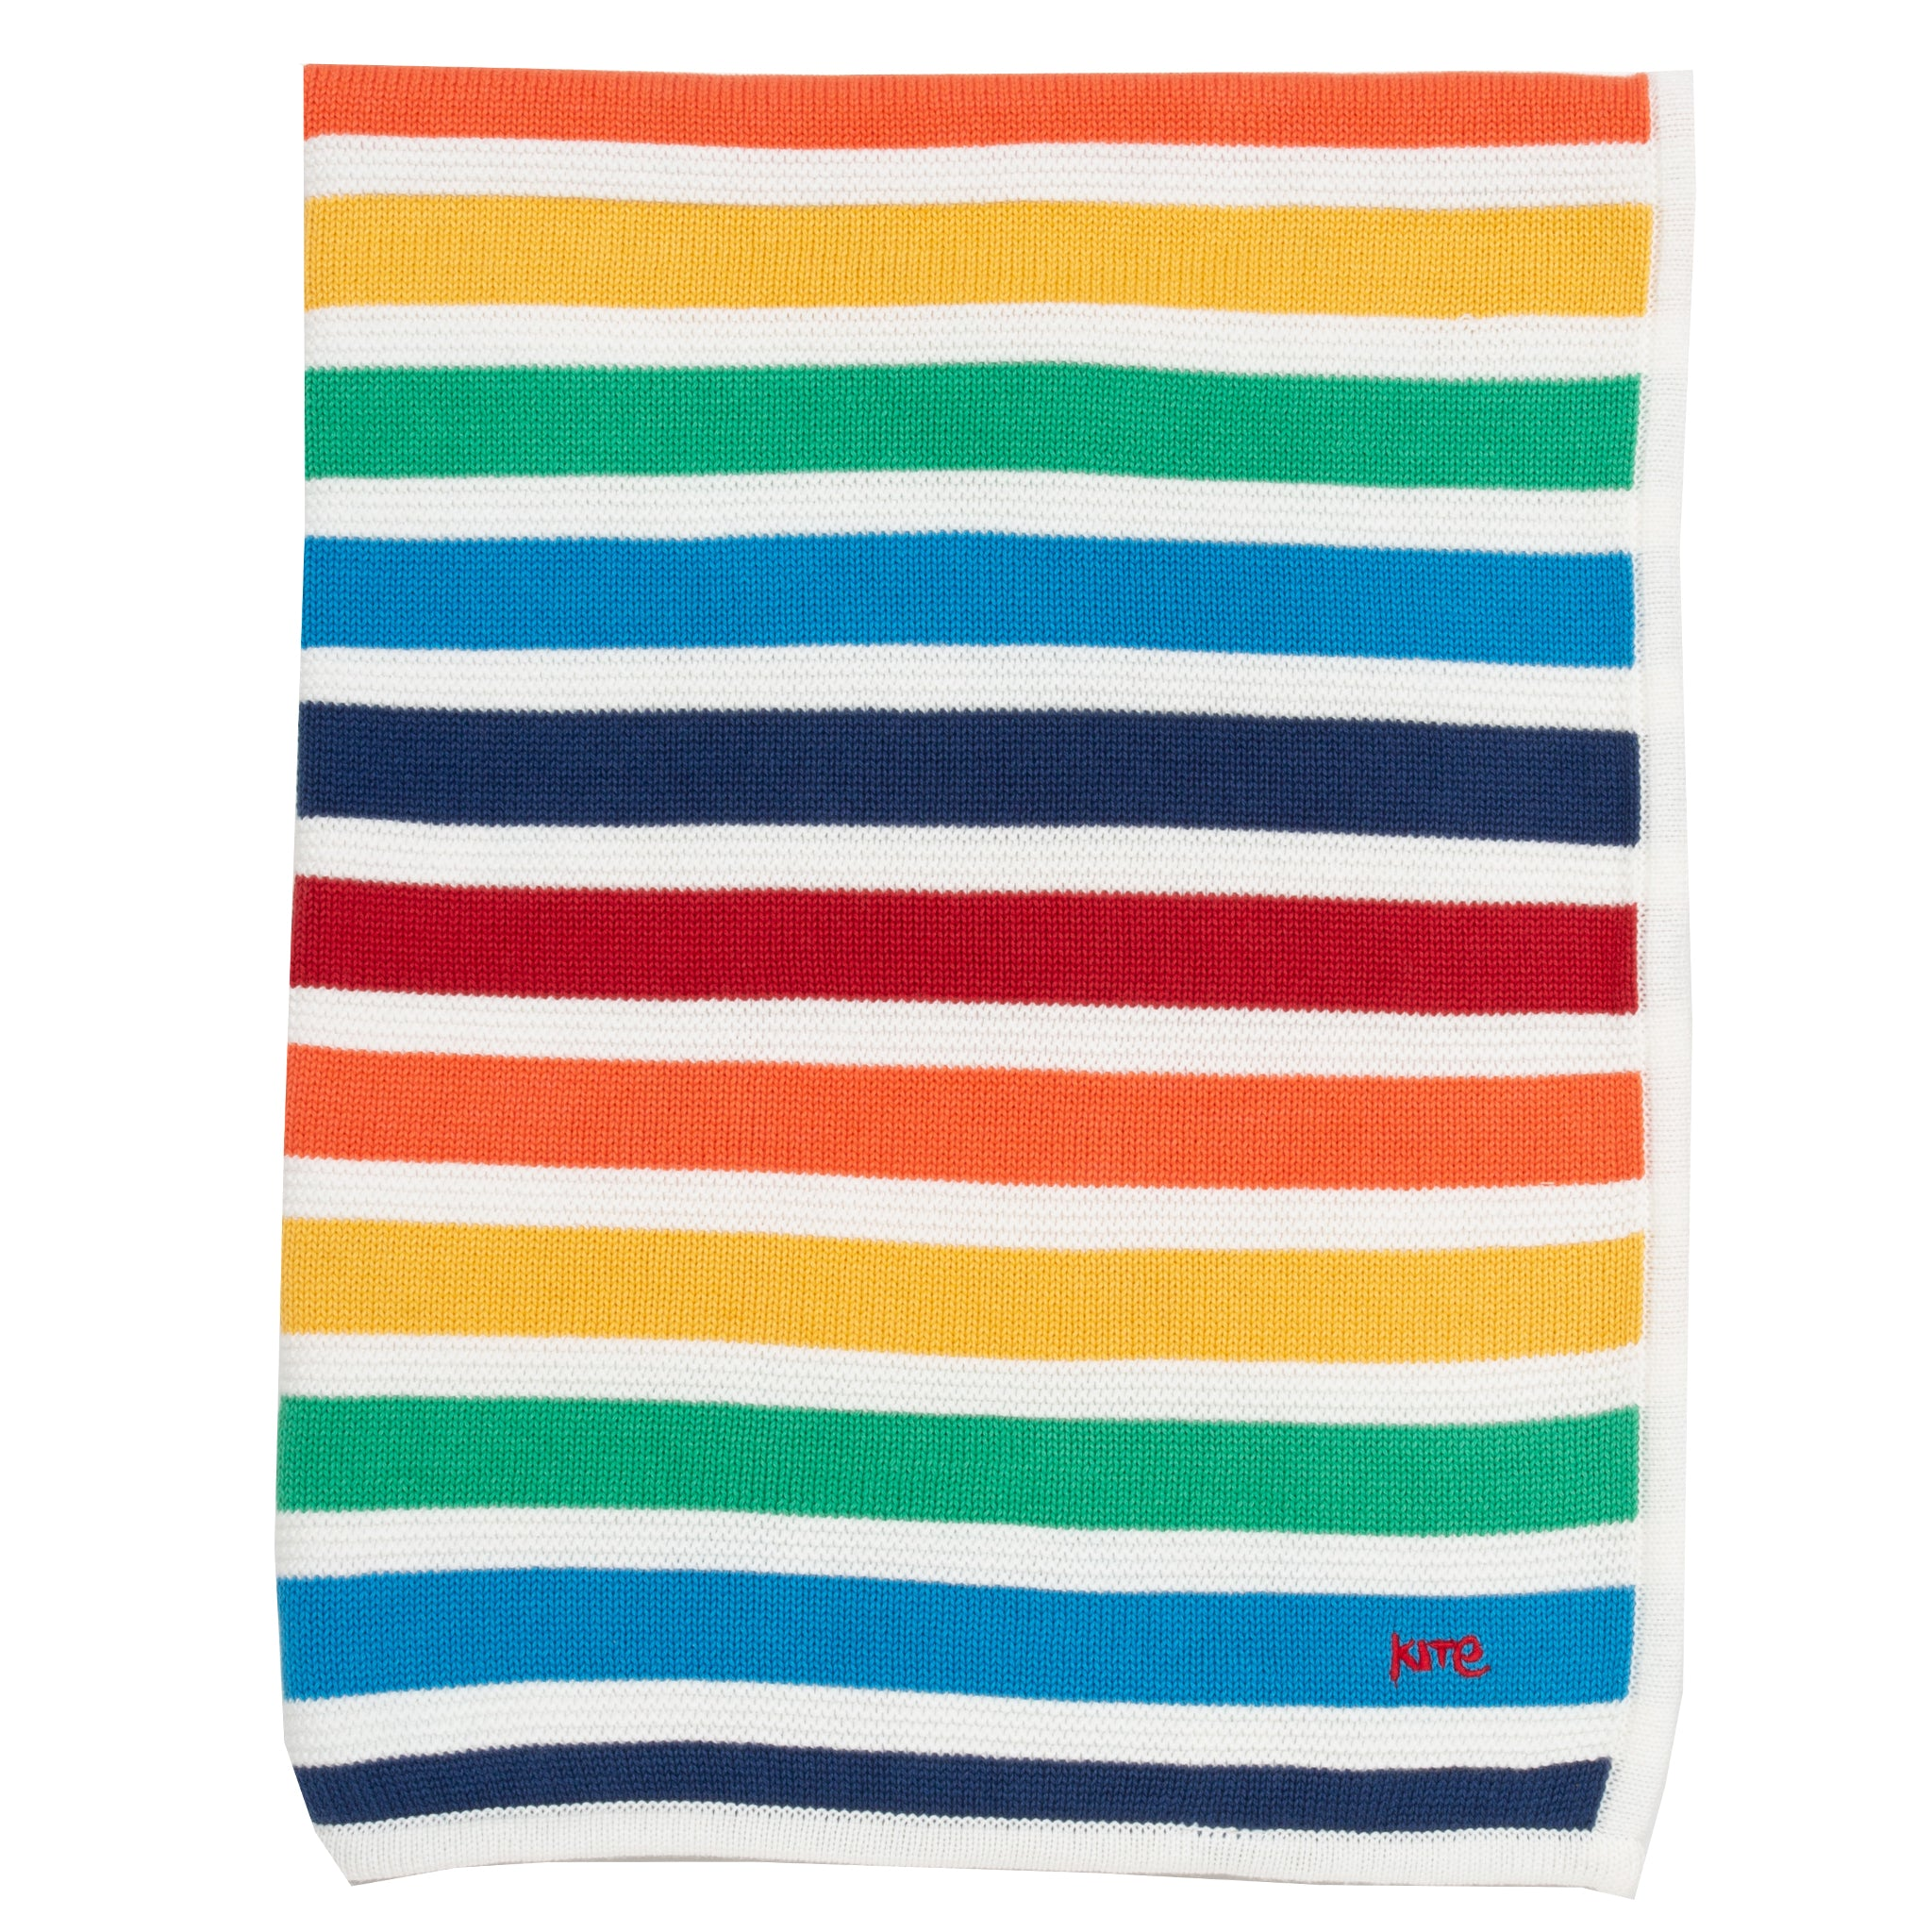 Kite Rainbow knit blanket